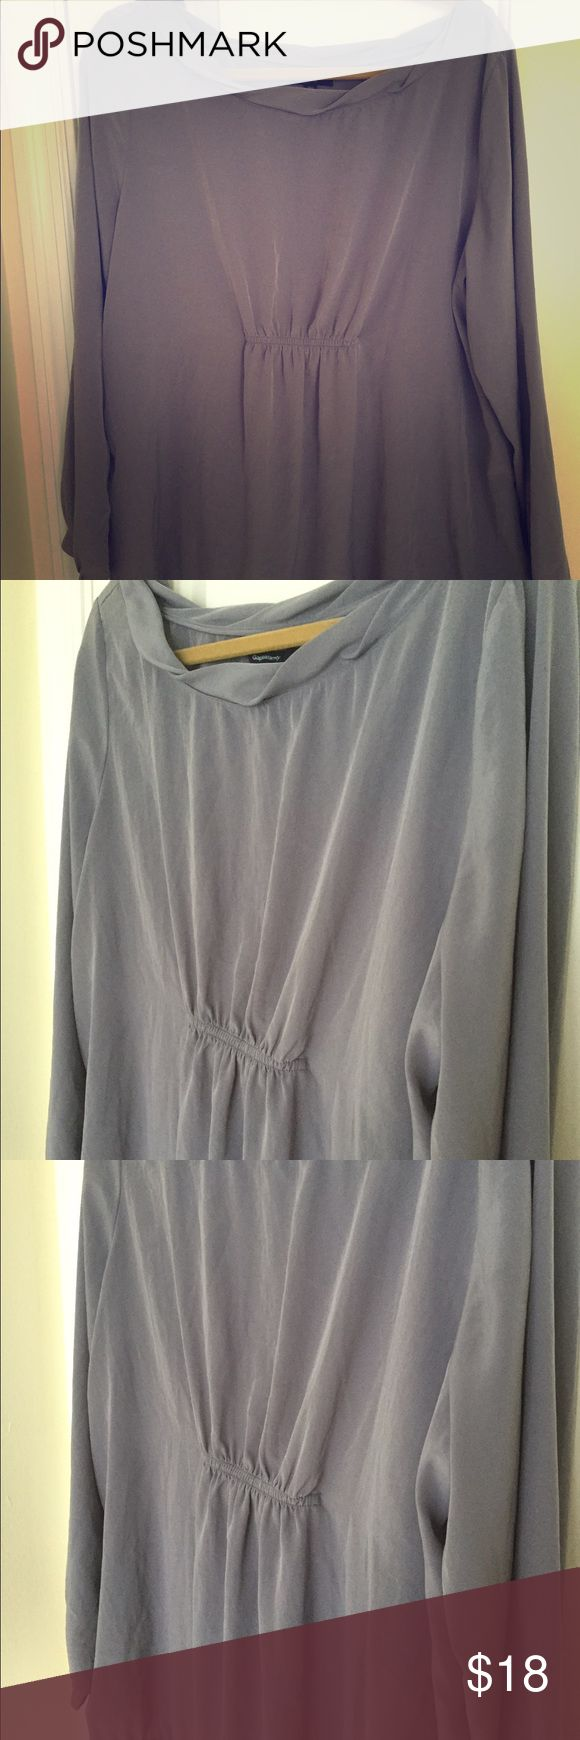 Gap top - maternity Very lightweight and classy long sleeve gap maternity blouse. Wear with leggings or skinny jeans. GAP Tops Blouses